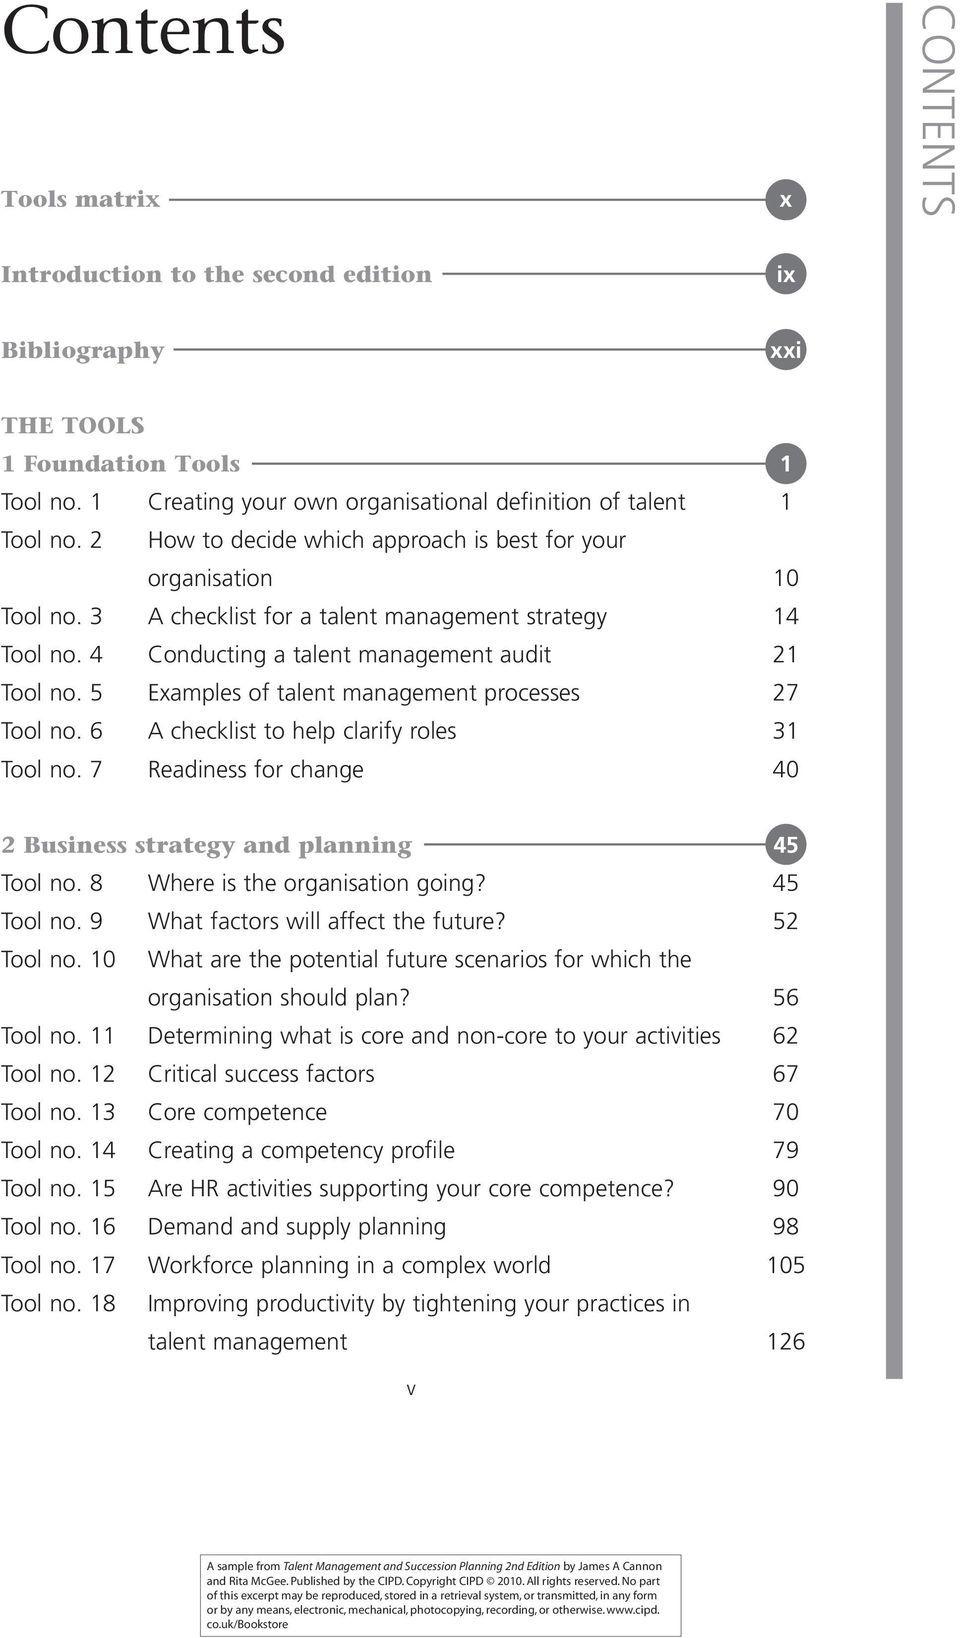 5 s of talent management processes 27 Tool no. 6 A checklist to help clarify roles 31 Tool no. 7 Readiness for change 40 2 Business strategy and planning 45 Tool no. 8 Where is the organisation going?